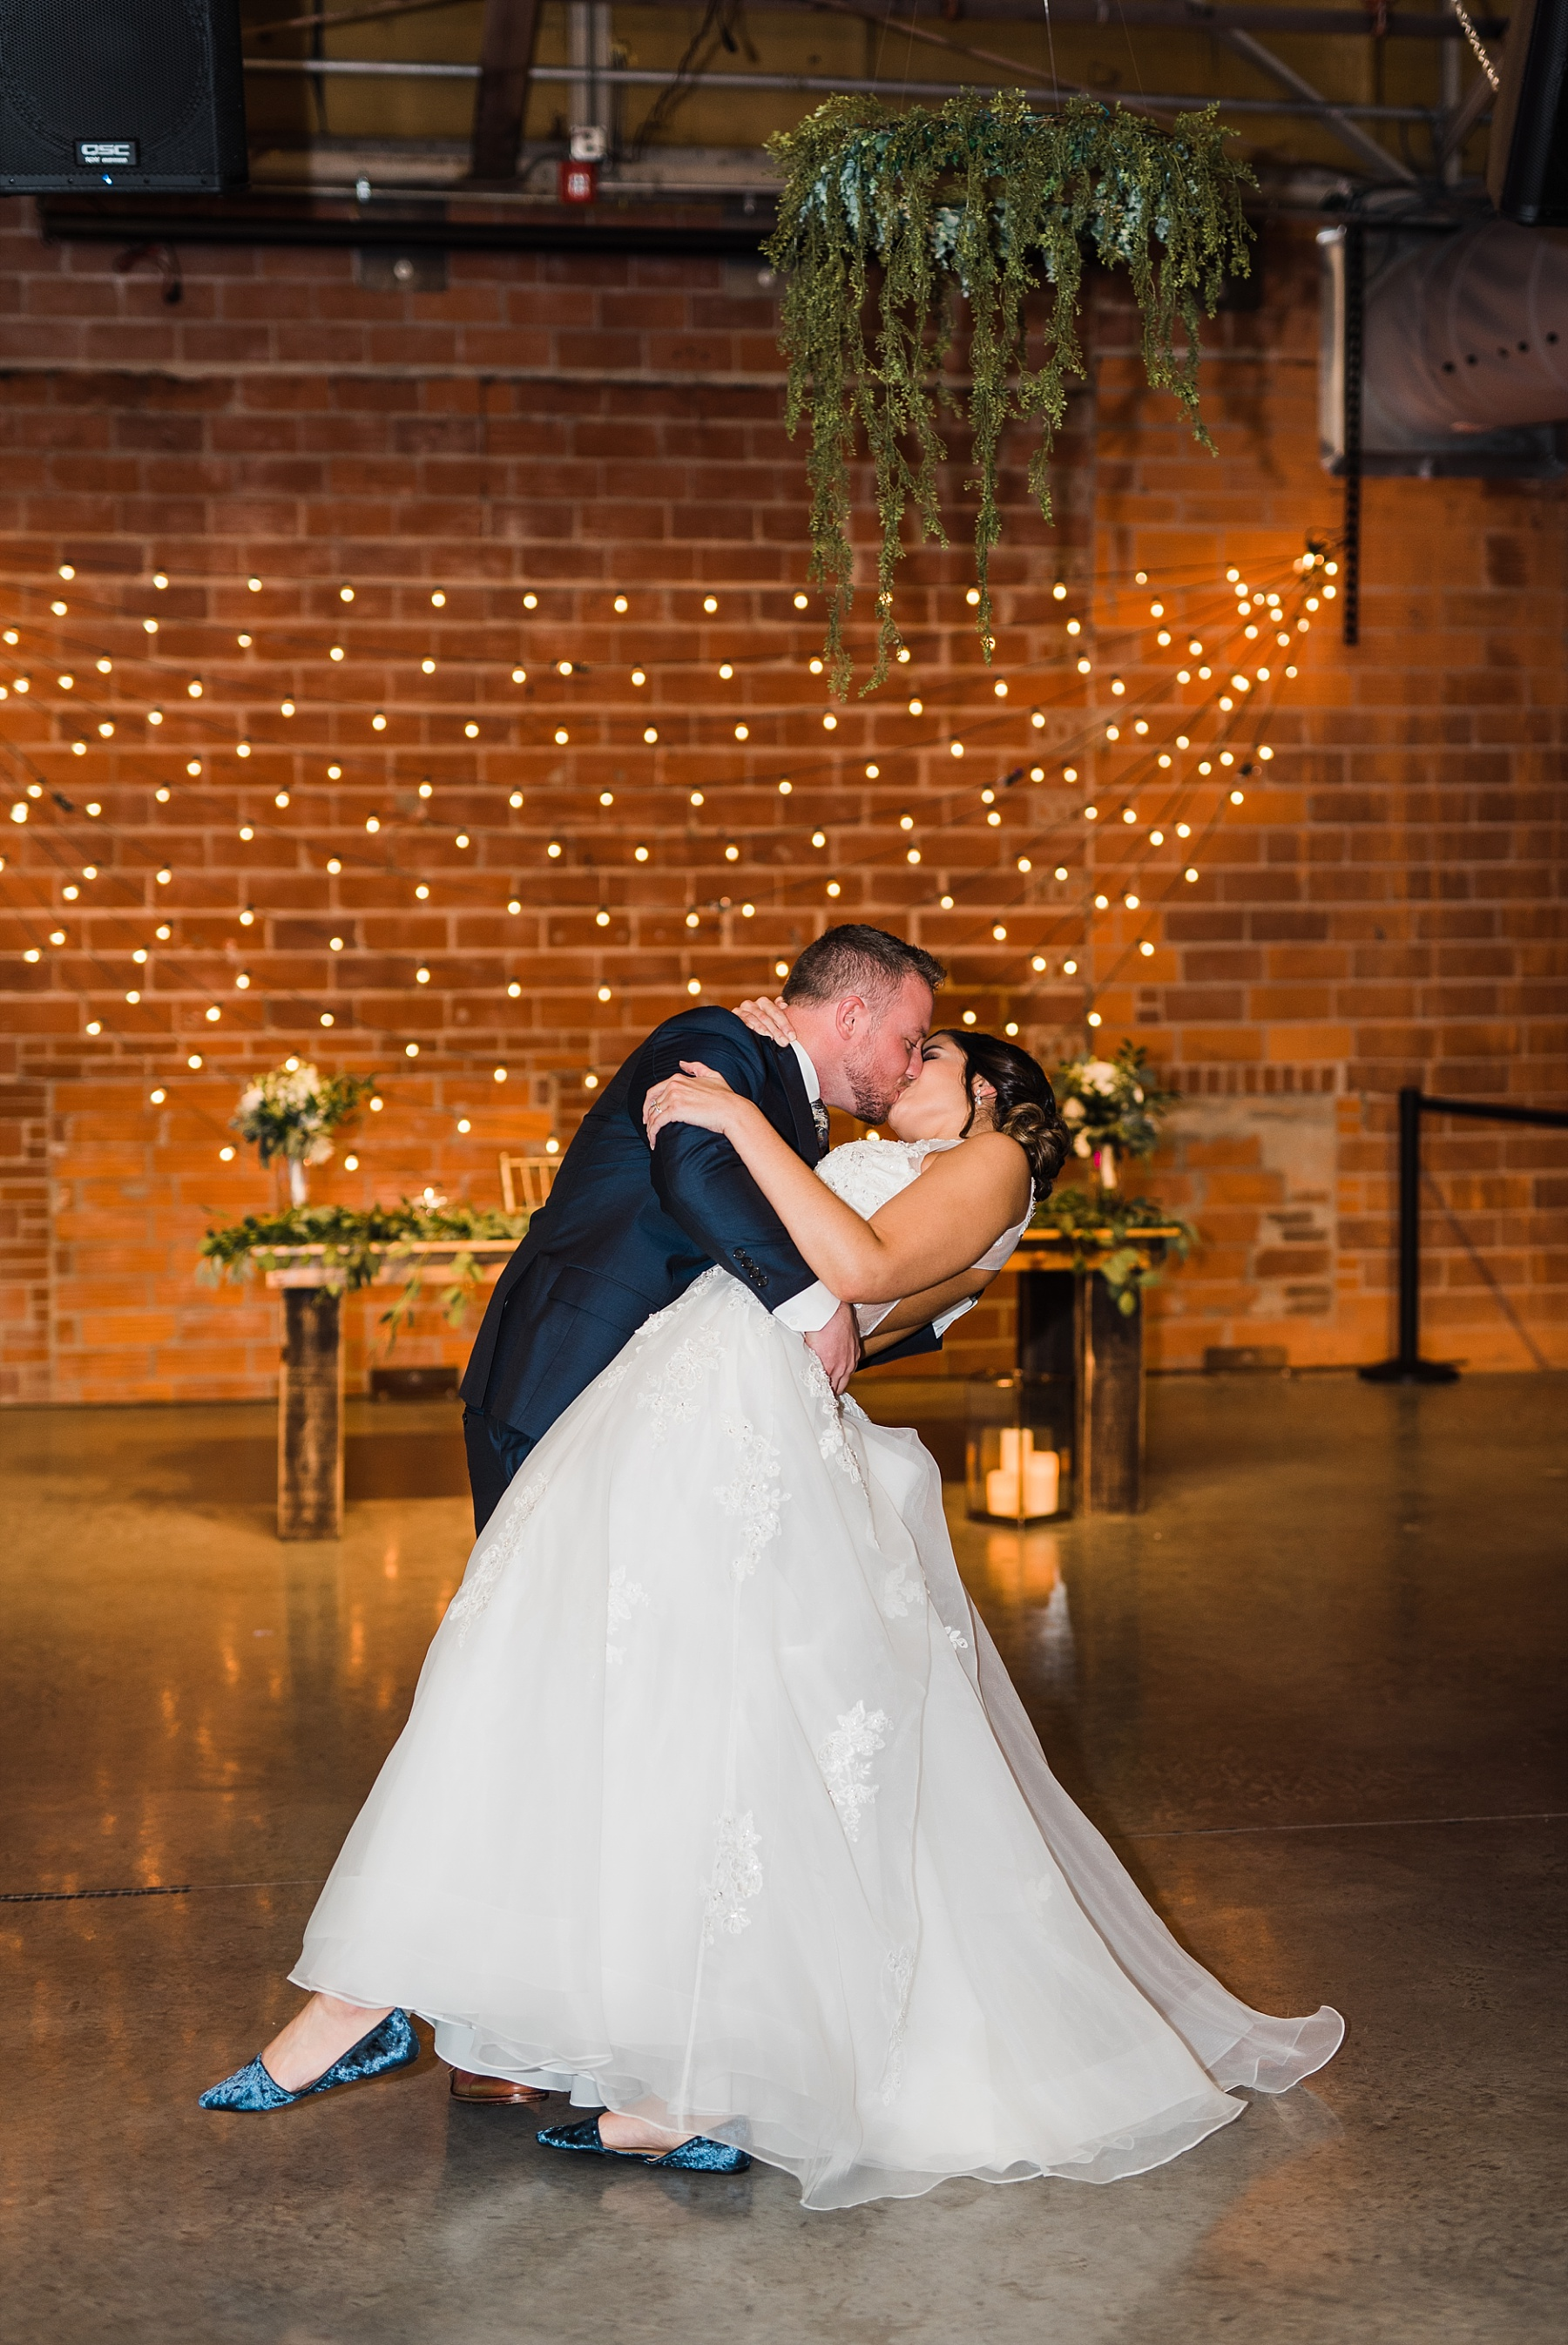 Couture Fall Wedding at The Exchange Venue in Camdenton Missouri_0096.jpg